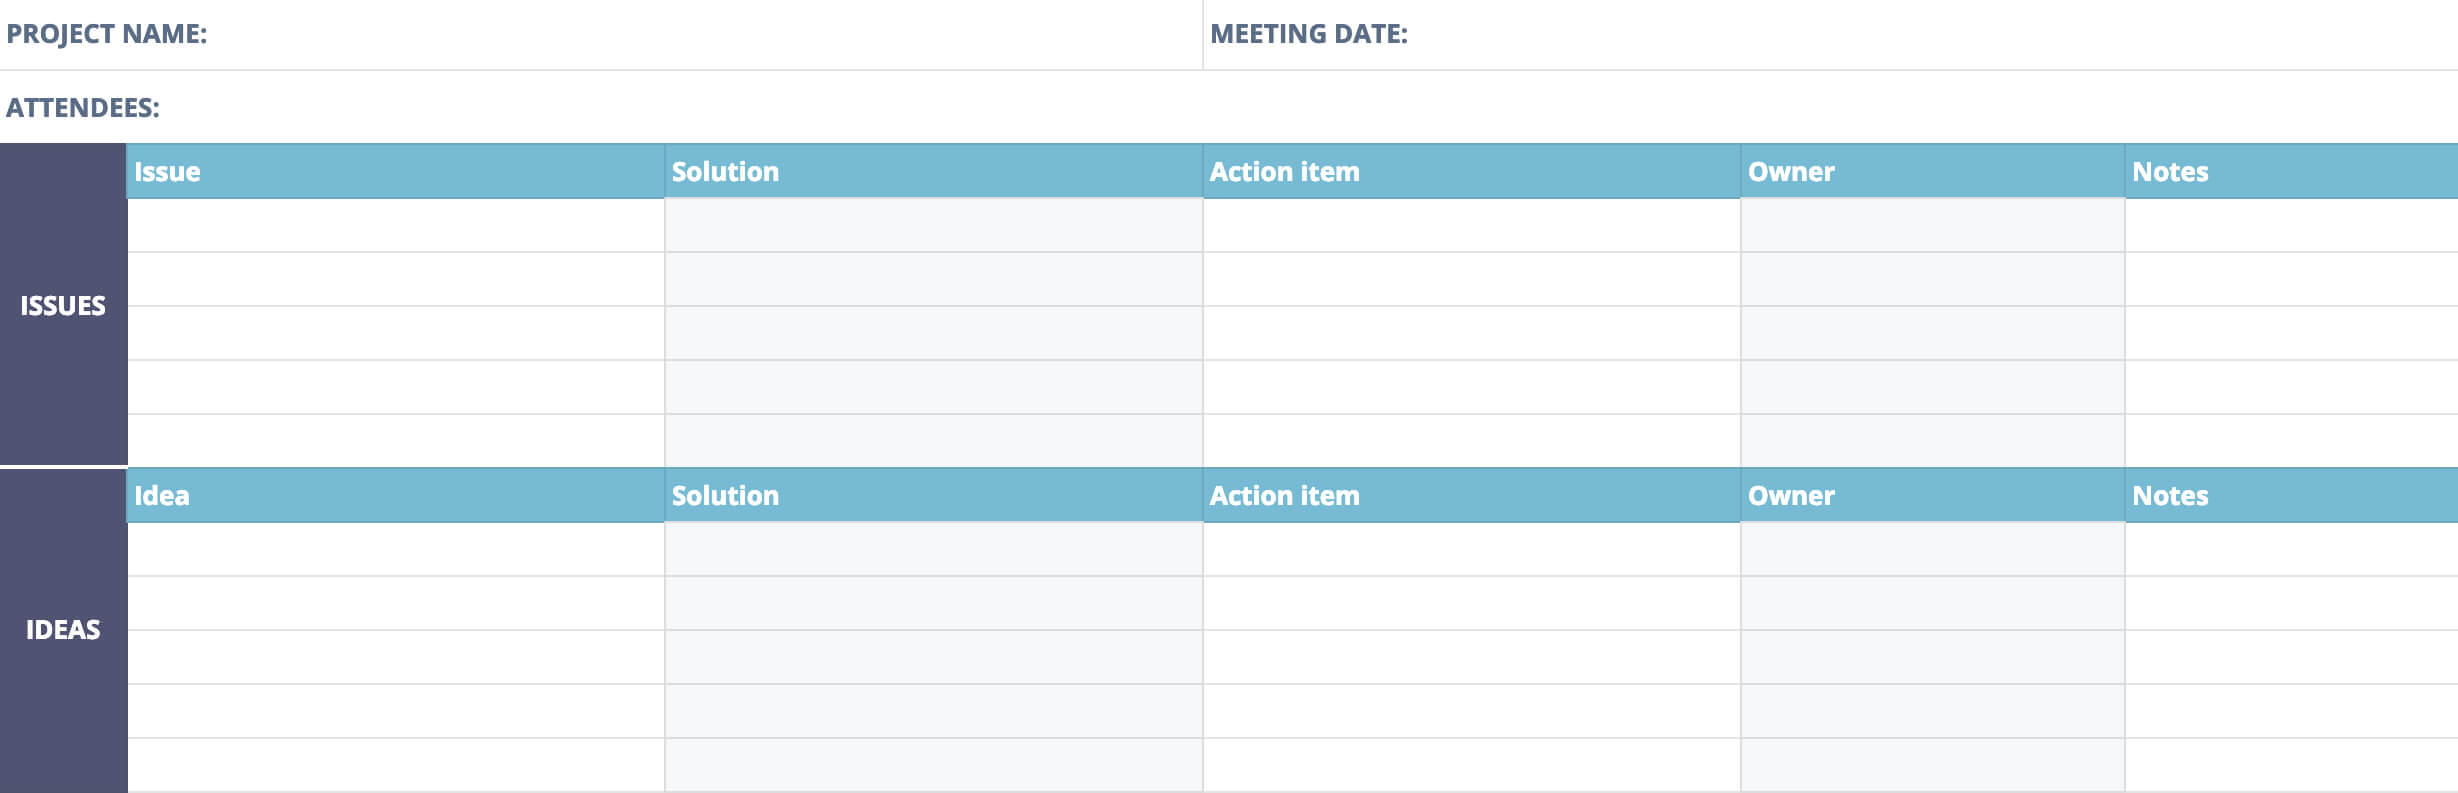 Post Mortem Meeting Template And Tips   Teamgantt With with regard to Fundraising Report Template